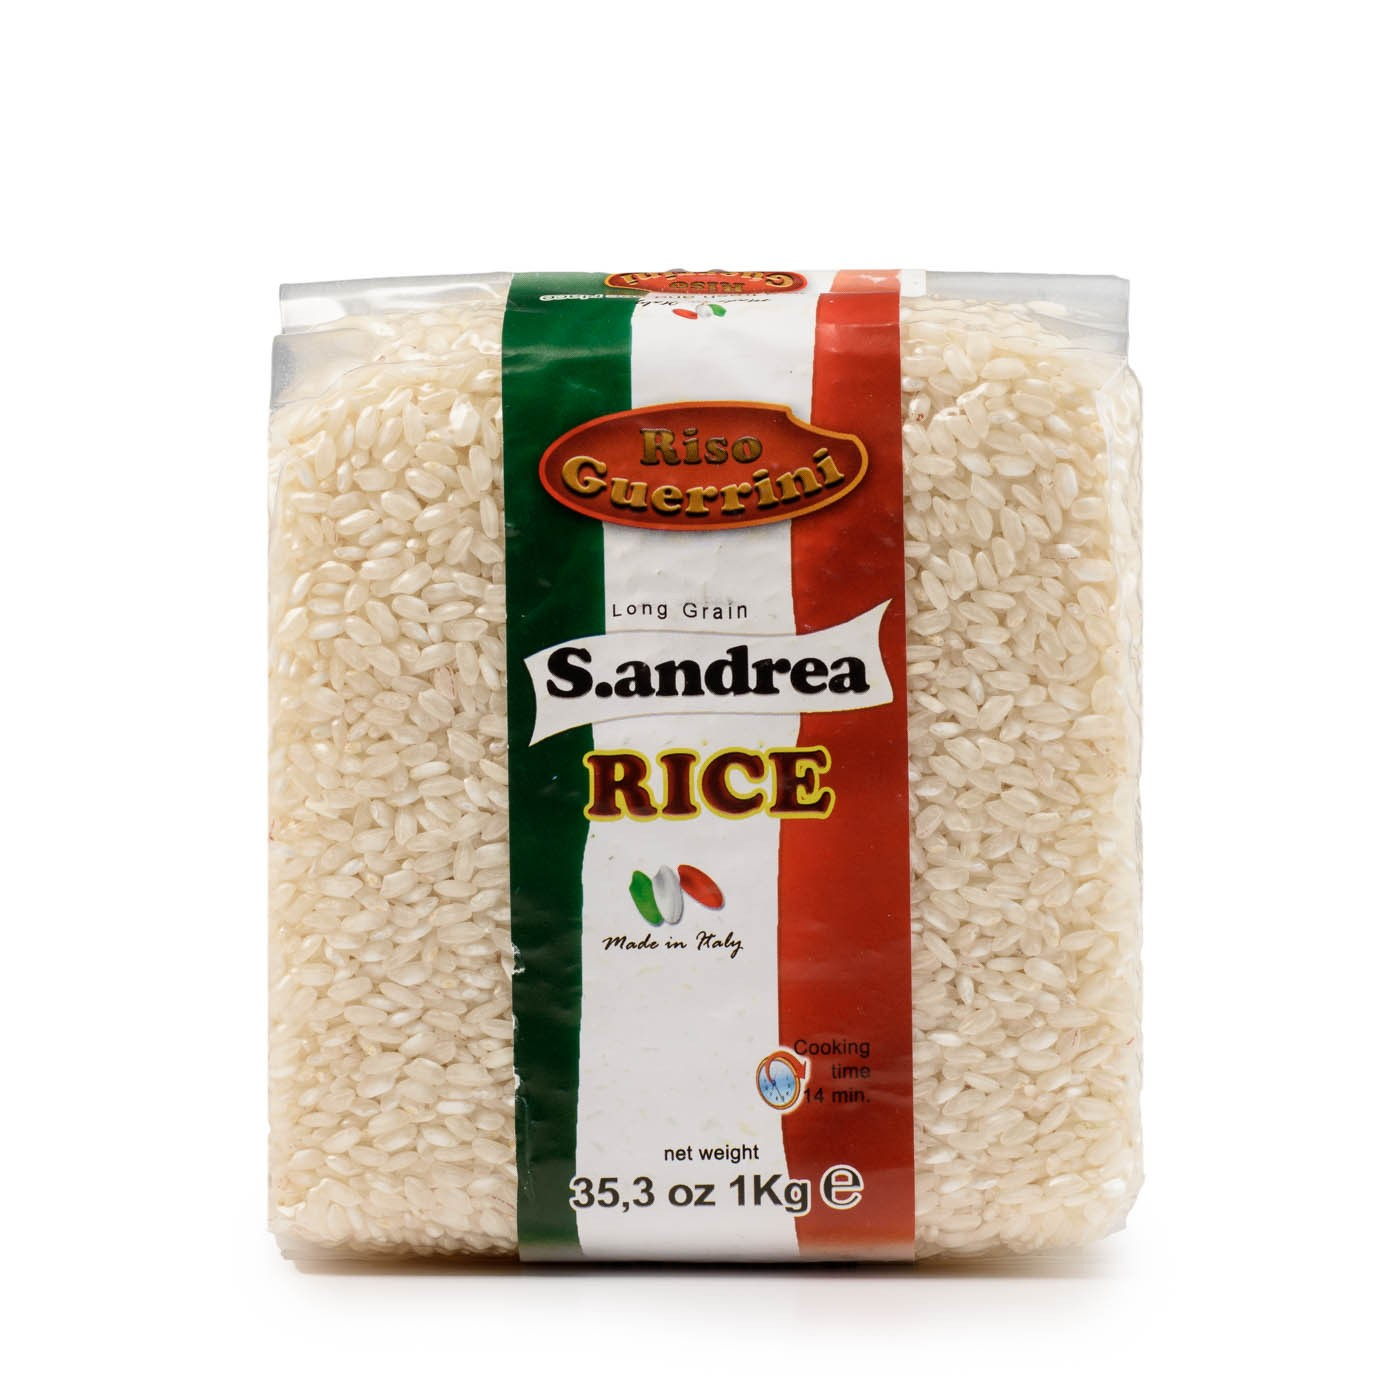 Sant'andrea Rice 35.3 oz